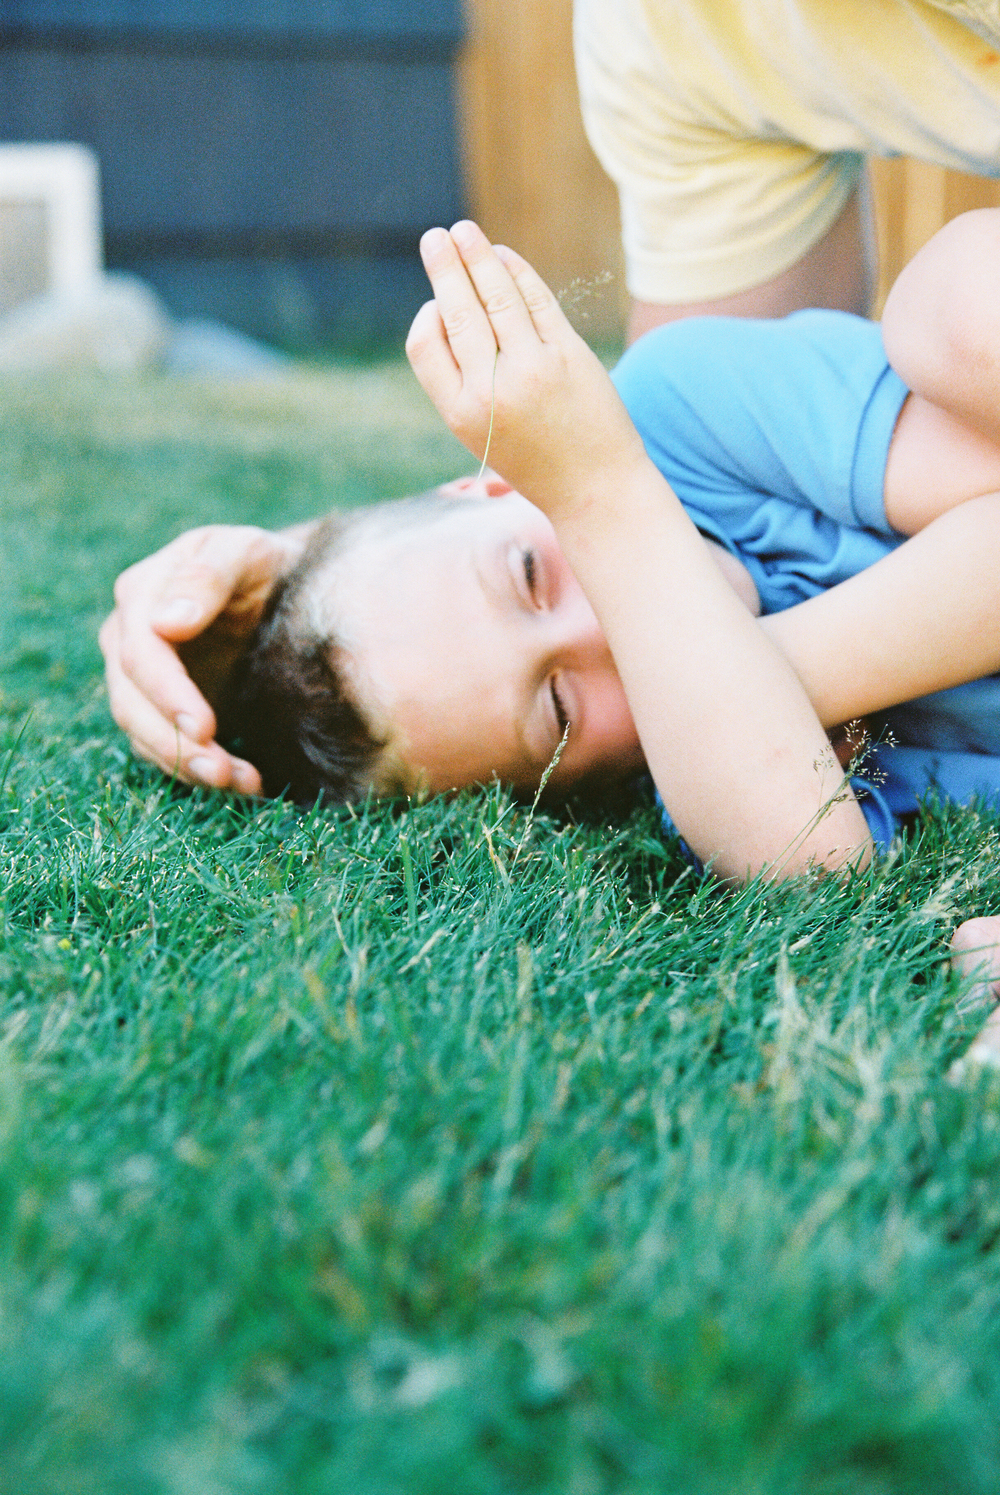 seattle newborn family photographer film photography family home natural light baby kodak portra 400 brother boy dad father grass